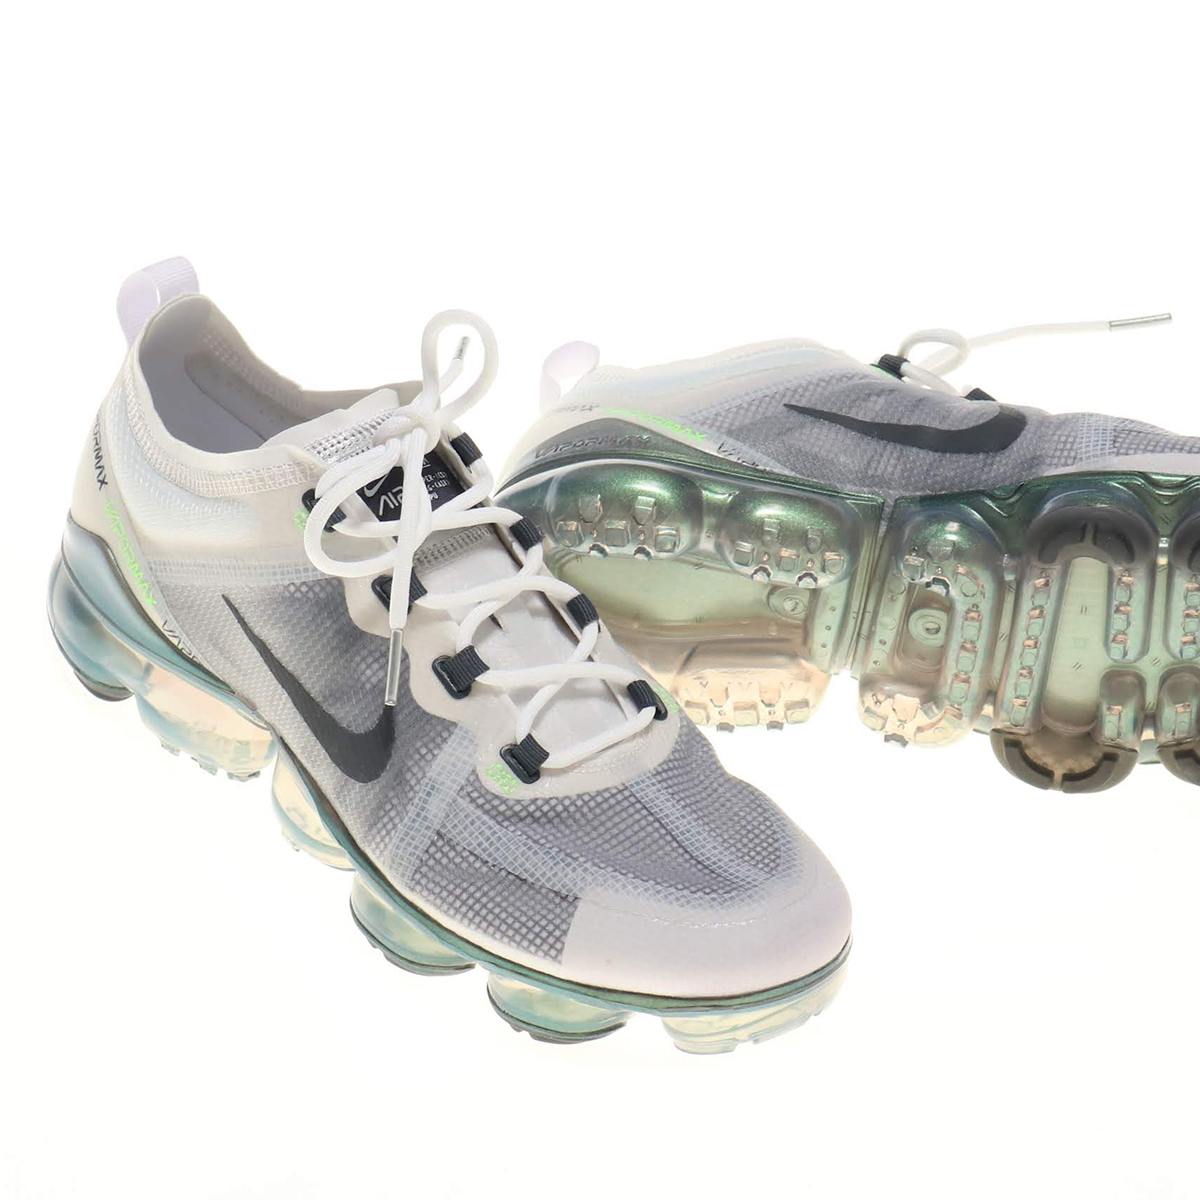 44a7c5662b150 The Nike air vapor max 2019 running shoes support a run structurally.  Arranged lightweight and flexible クッショニングfor a sole most Air Max history,  ...